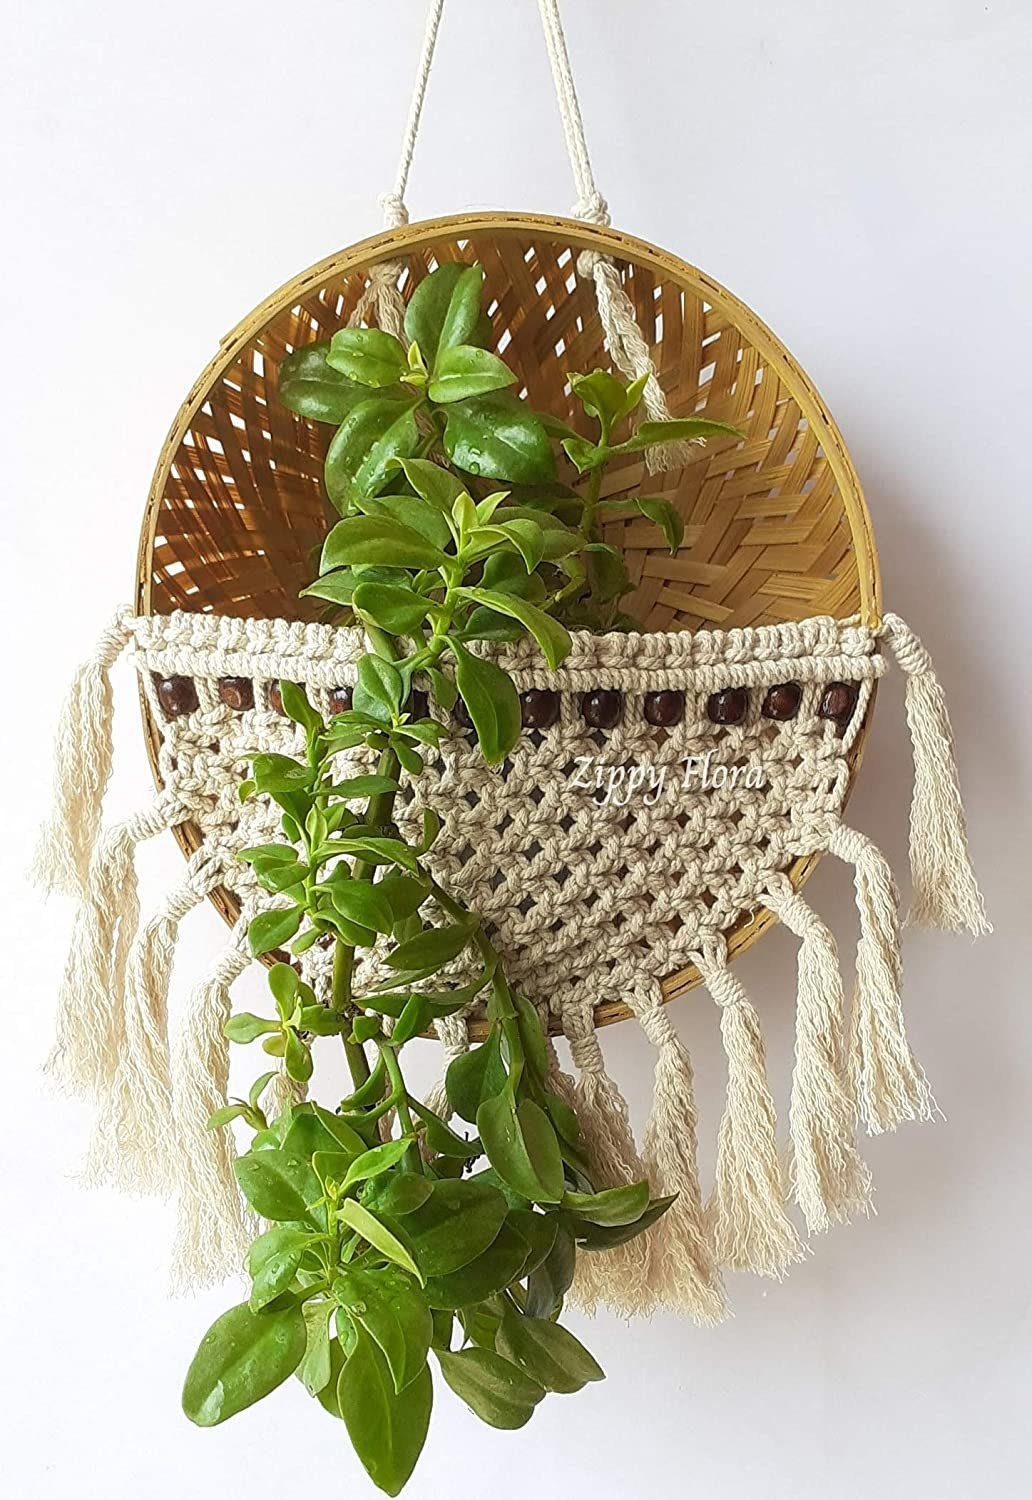 A macrame and bamboo hanging basket with a plant placed within it.